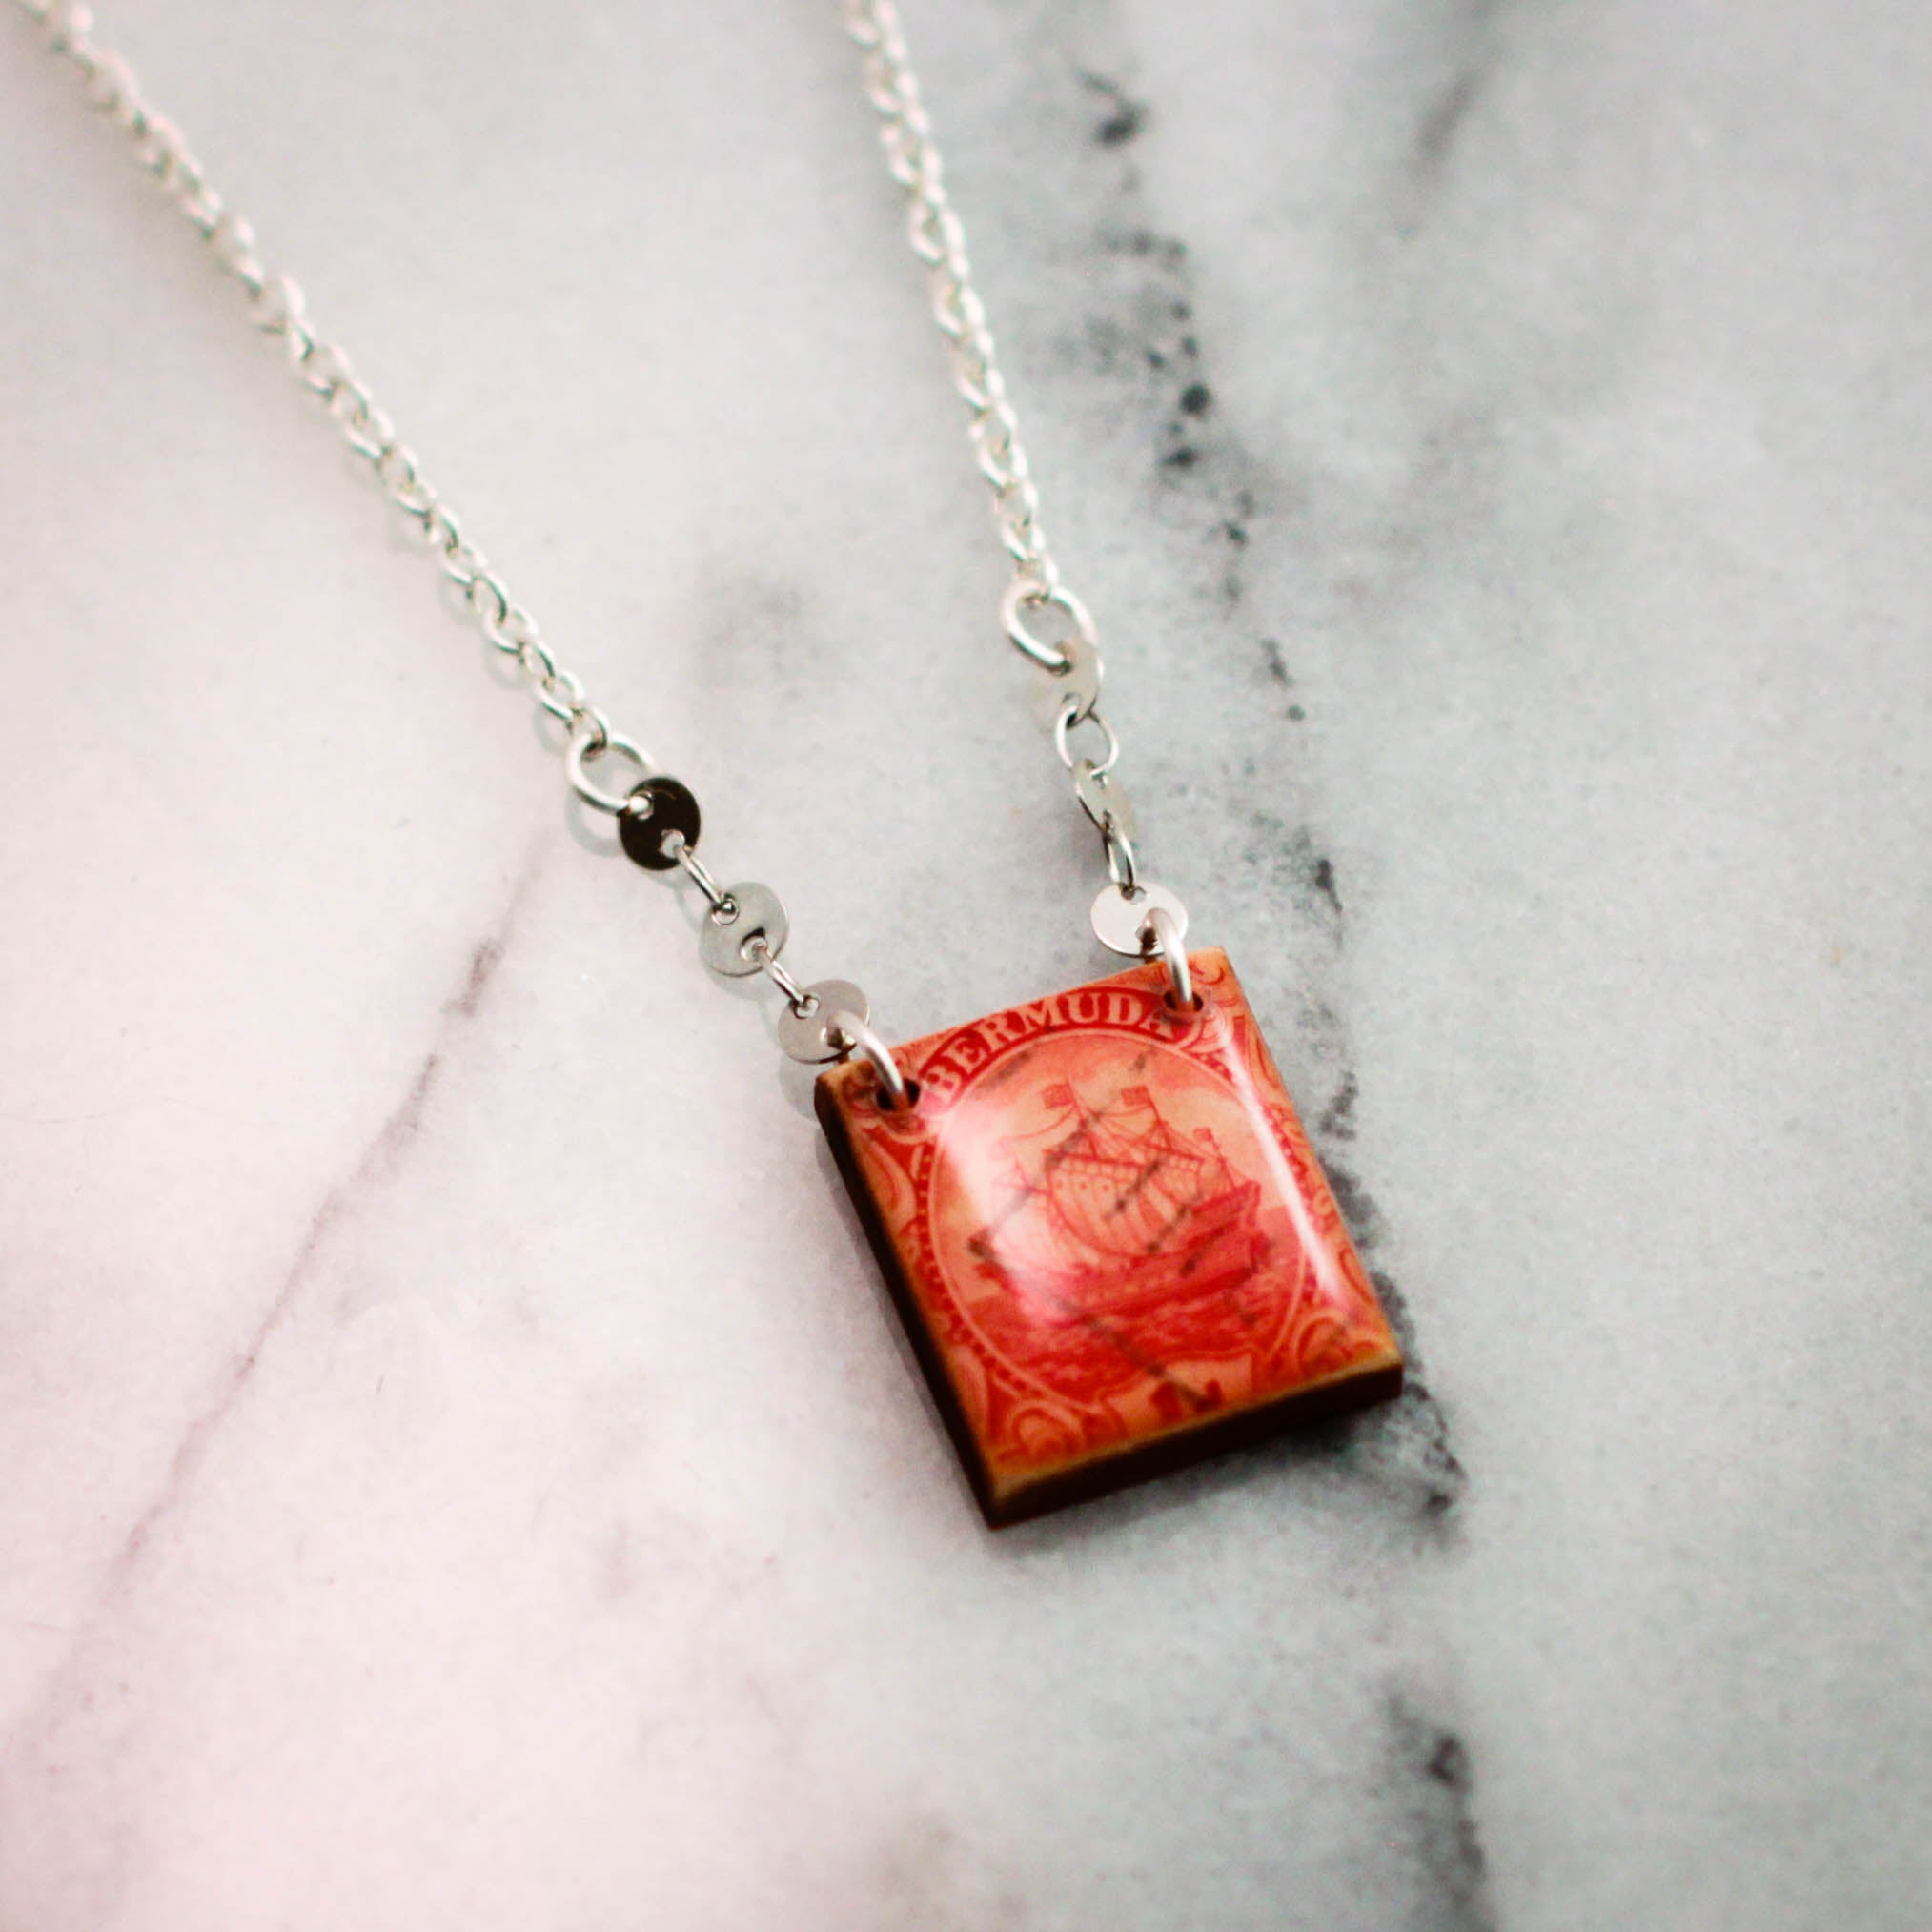 BERMUDA- Antique Postage Stamp Red Necklace